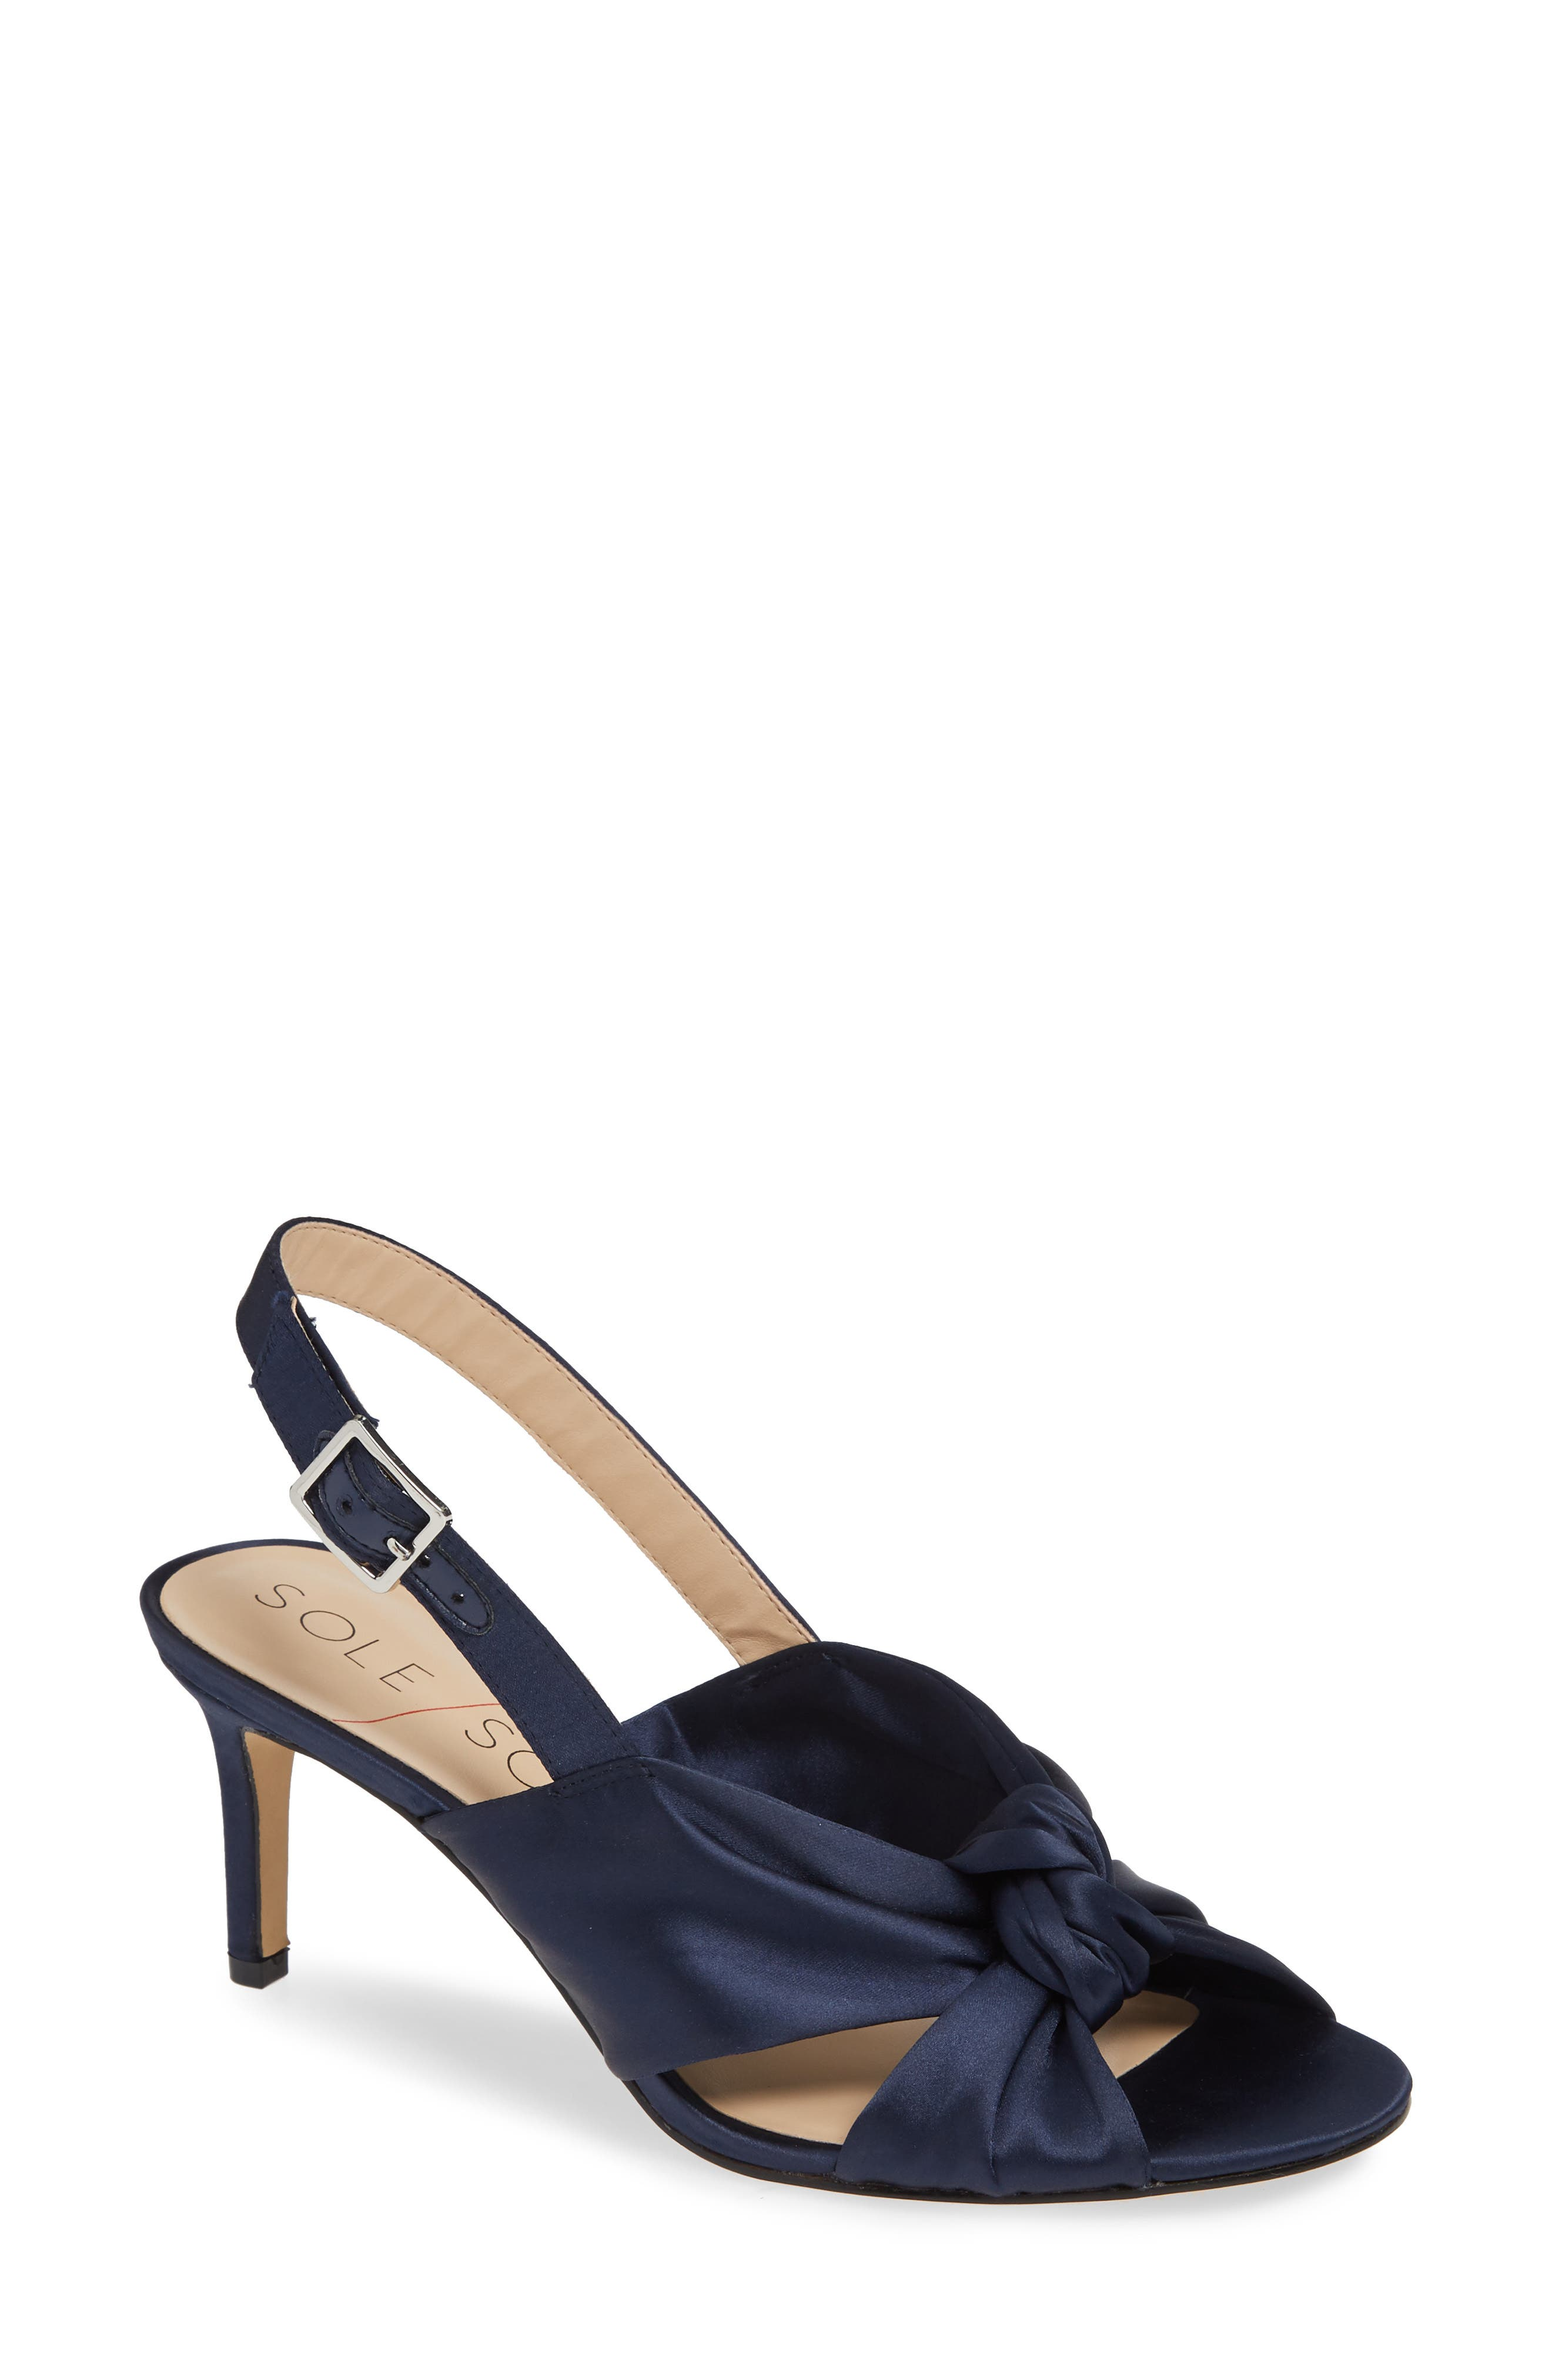 Genneene Knotted Slingback Sandal,                         Main,                         color, MIDNIGHT SATIN